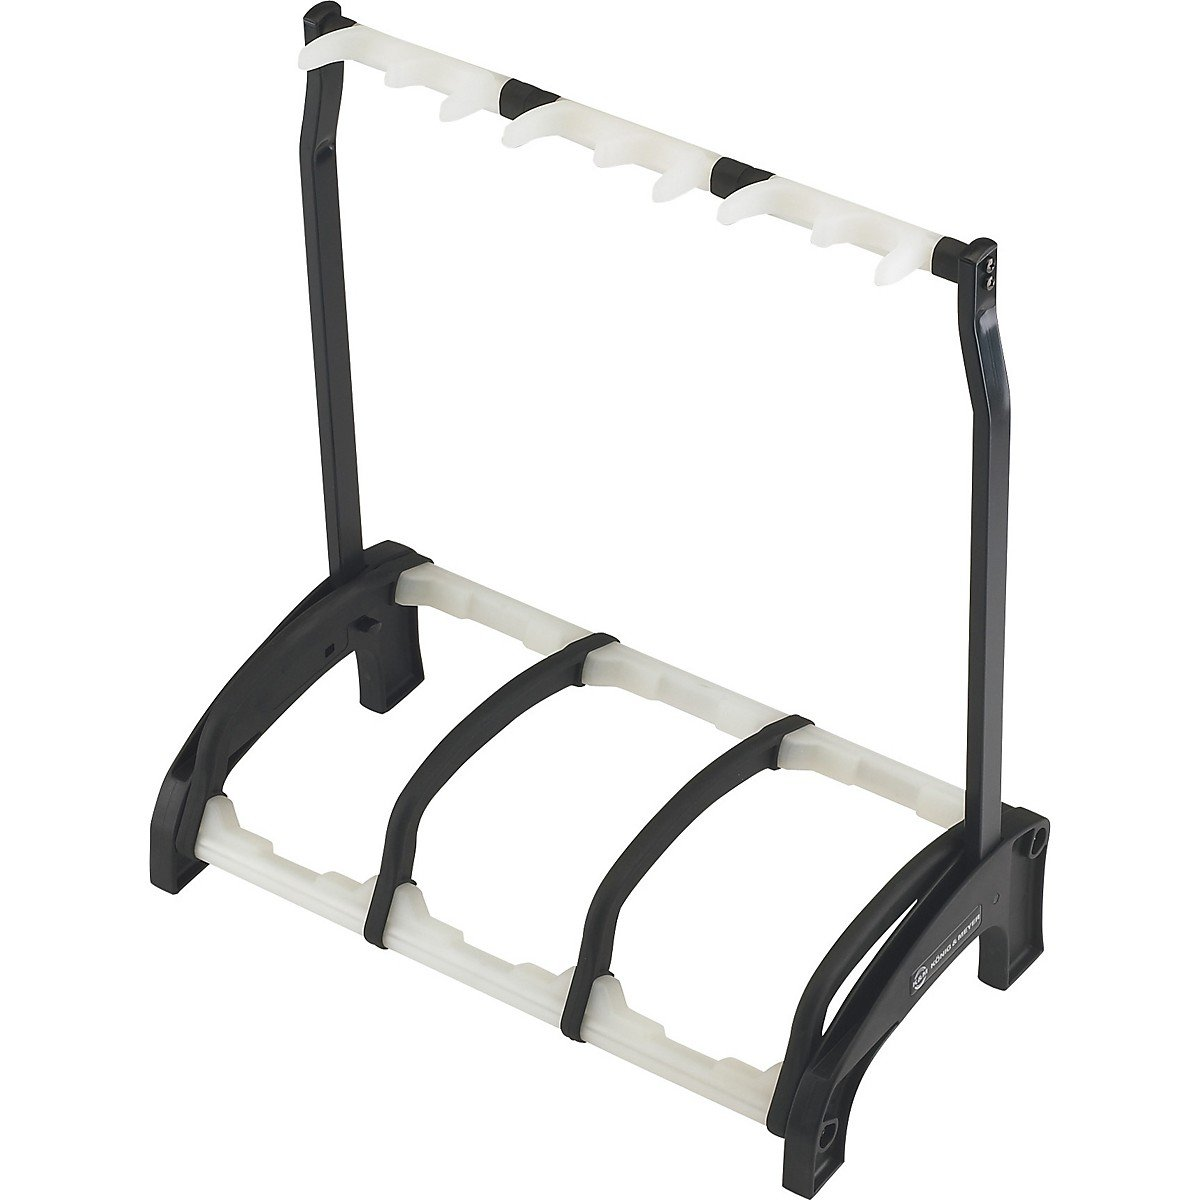 Konig K&M 17513 Three guitar stand »Guardian 3« black with translucent support elements B004W1YZC2